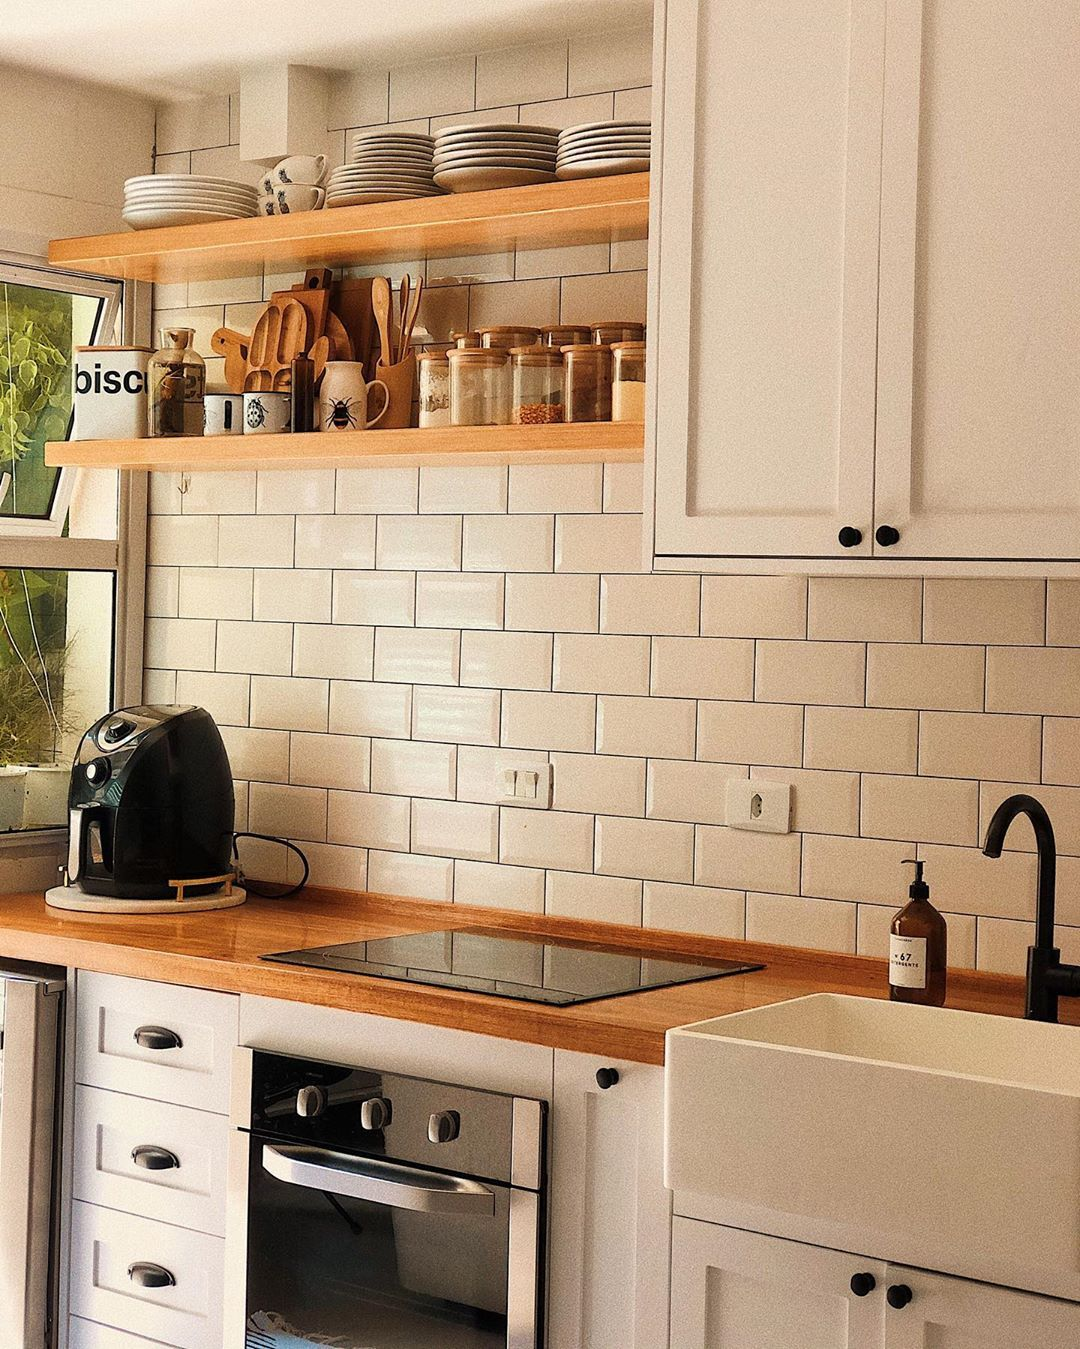 Pin By Wellen Day On Decoracao In 2020 Kitchen Cabinets Kitchen Sweet Home